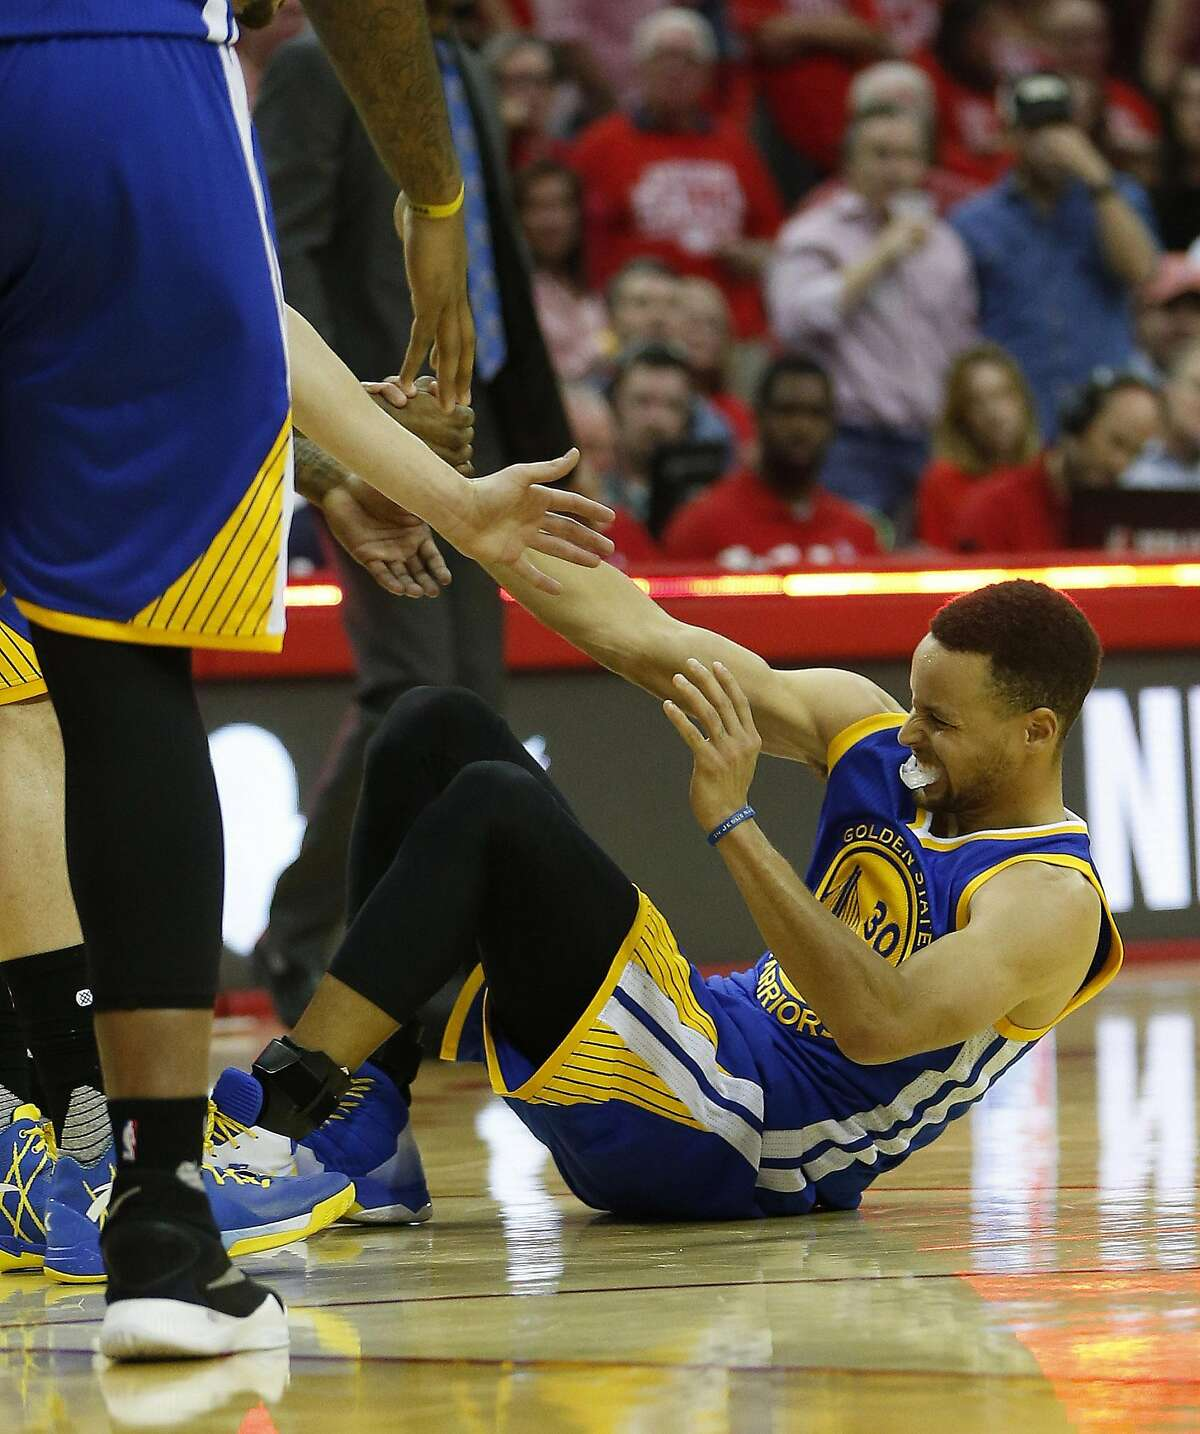 In this Sunday, April 24, 2016 photo, Golden State Warriors guard Stephen Curry (30) is helped up after being injured on the final play during the first half of Game 4 in the first round of the NBA playoff series against the Houston Rockets, in Houston. Golden State's record-setting run toward a second consecutive NBA championship may come down to an MRI on the sprained right knee of Stephen Curry. The NBA's reigning MVP missed the second half of a win over the Houston Rockets in Game 4 on Sunday and was expected to have the medical test later Monday. (Karen Warren/Houston Chronicle via AP) MANDATORY CREDIT